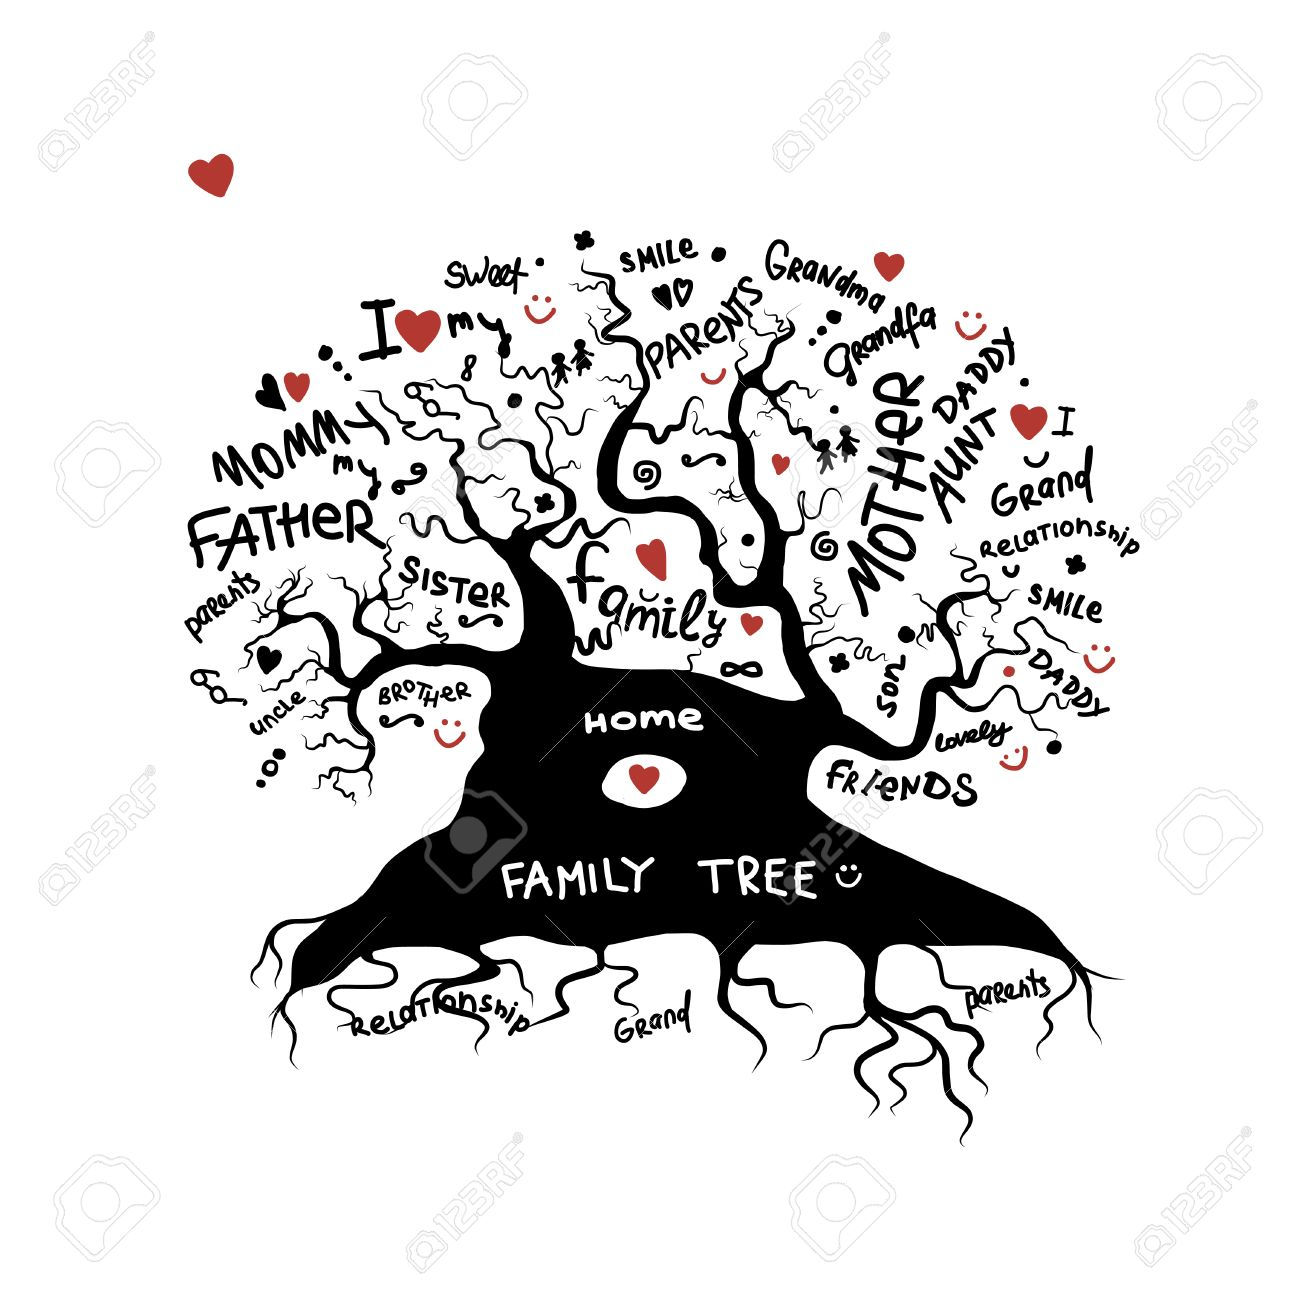 Family tree sketch for your design Stock Vector - 30683392